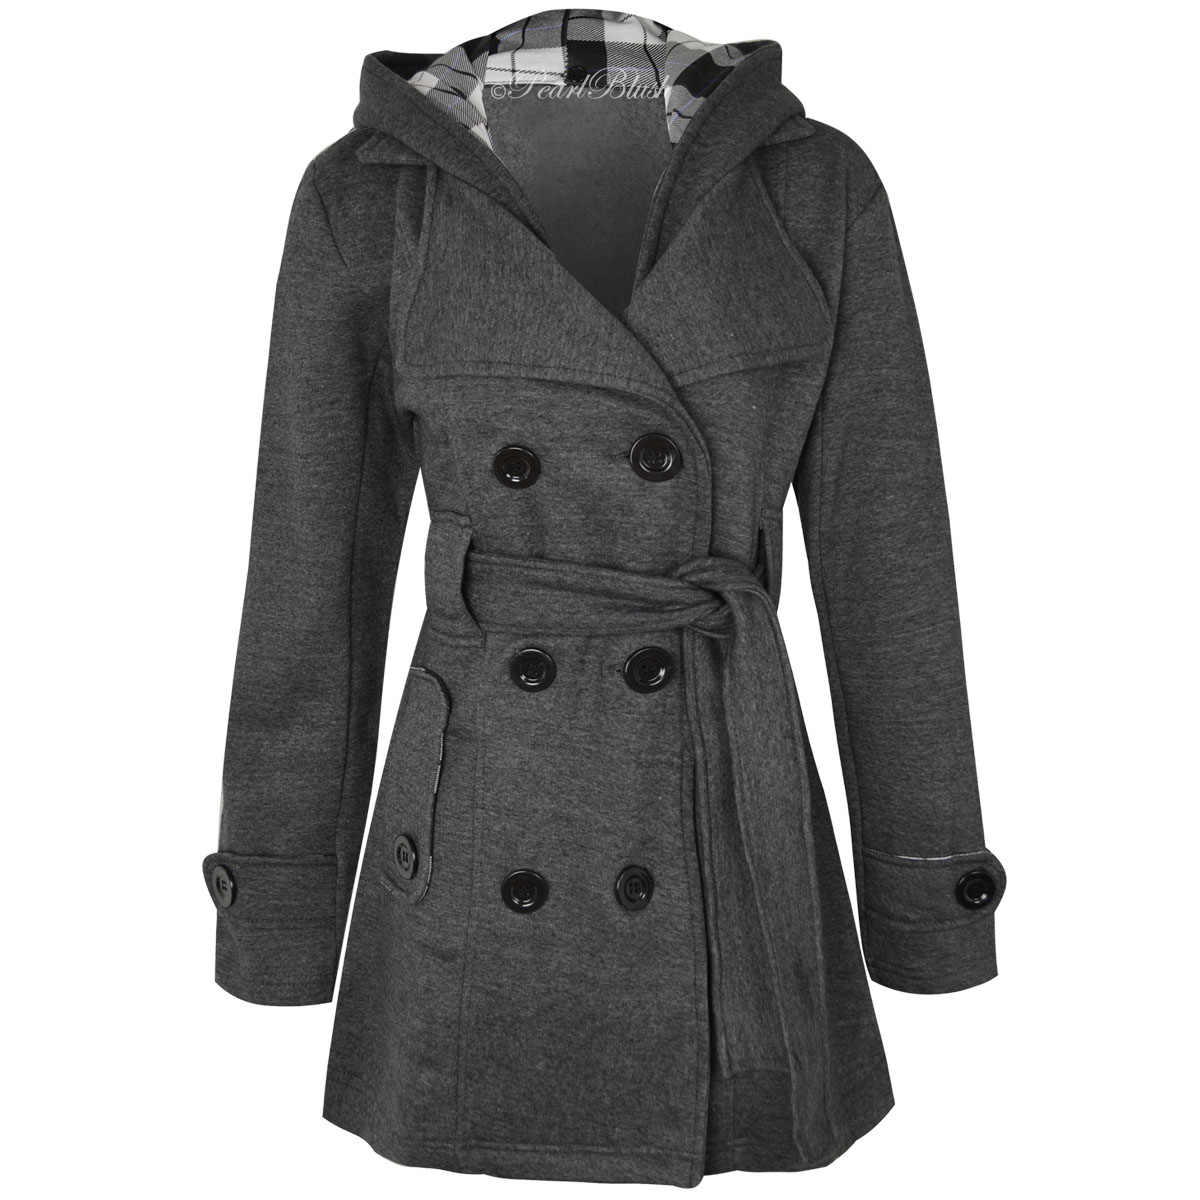 Women's New Double Breasted Coat Fit and Flare Ladies Mac Trench Winter Jacket. EUR 45,51 Compralo Subito 28d 7h. Vedi Dettagli. Women's New Double Breasted Coat Fit and Flare Ladies Mac Trench Winter Jacket. EUR 45,51 Compralo Subito 28d 7h. Vedi Dettagli. Ladies Casual White Cotton Thomas Burberry Jacket Size Medium.